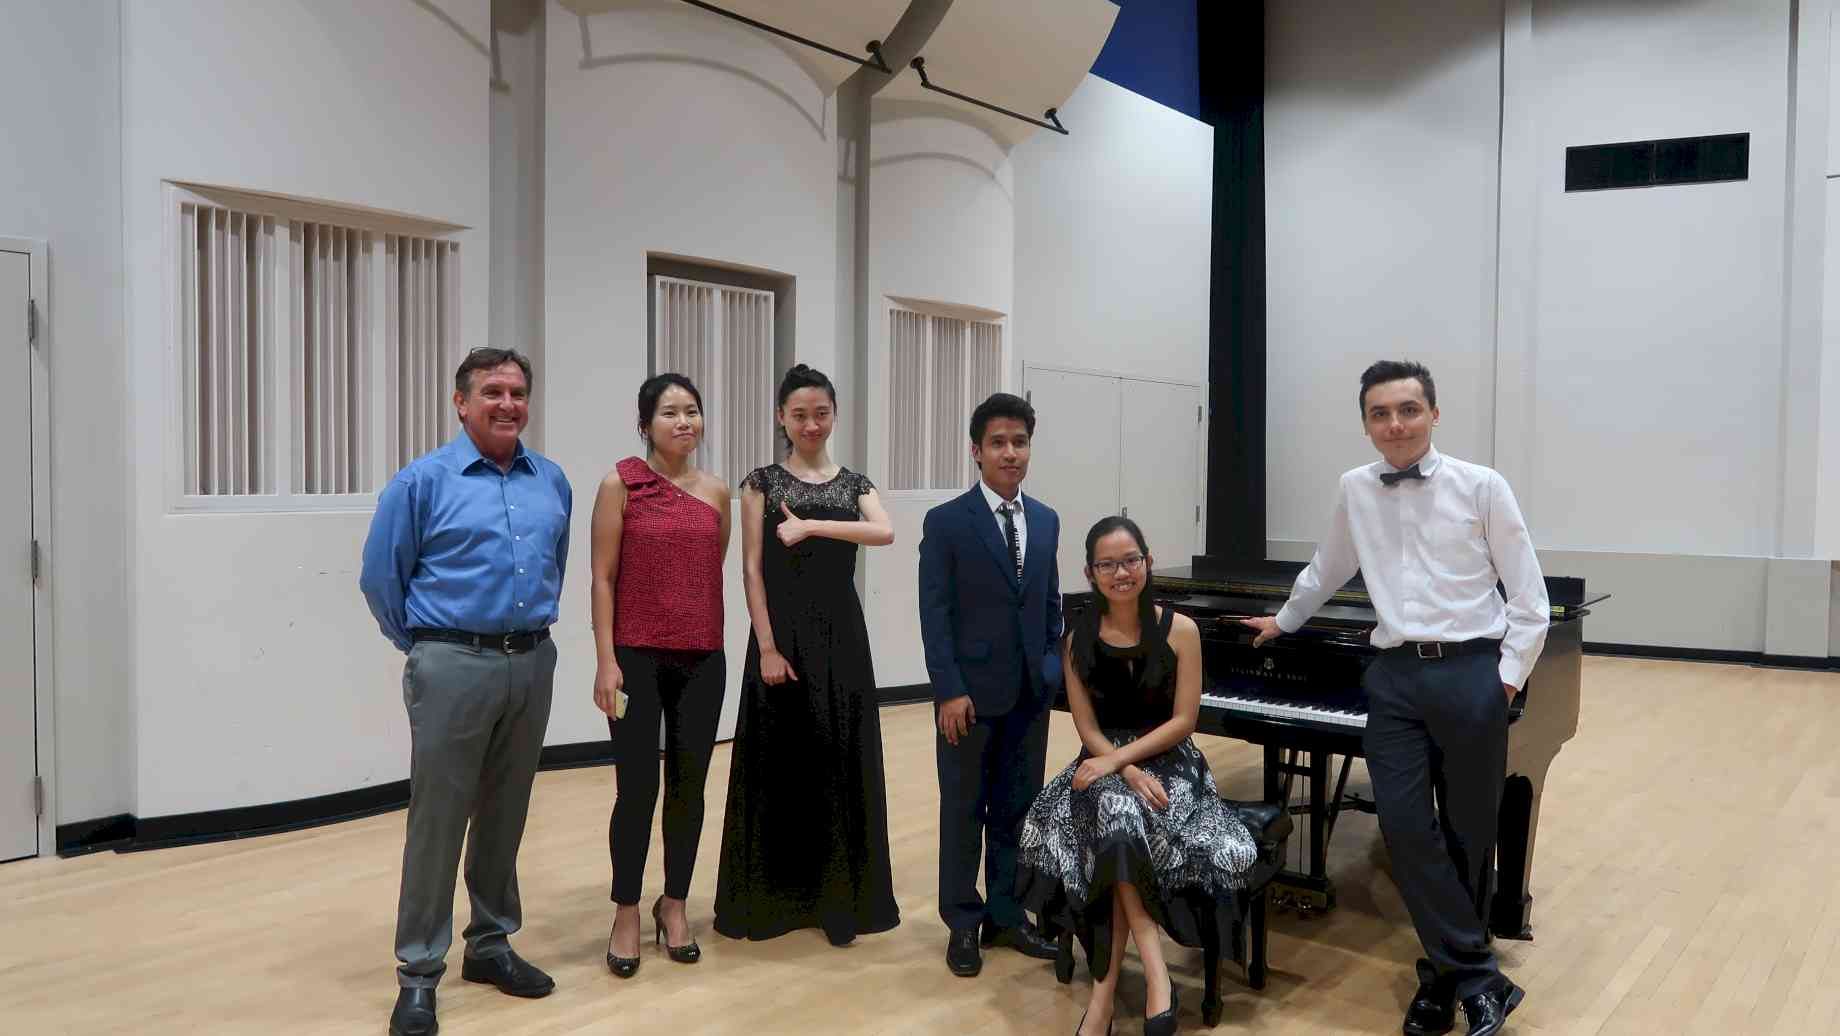 After the participant recital